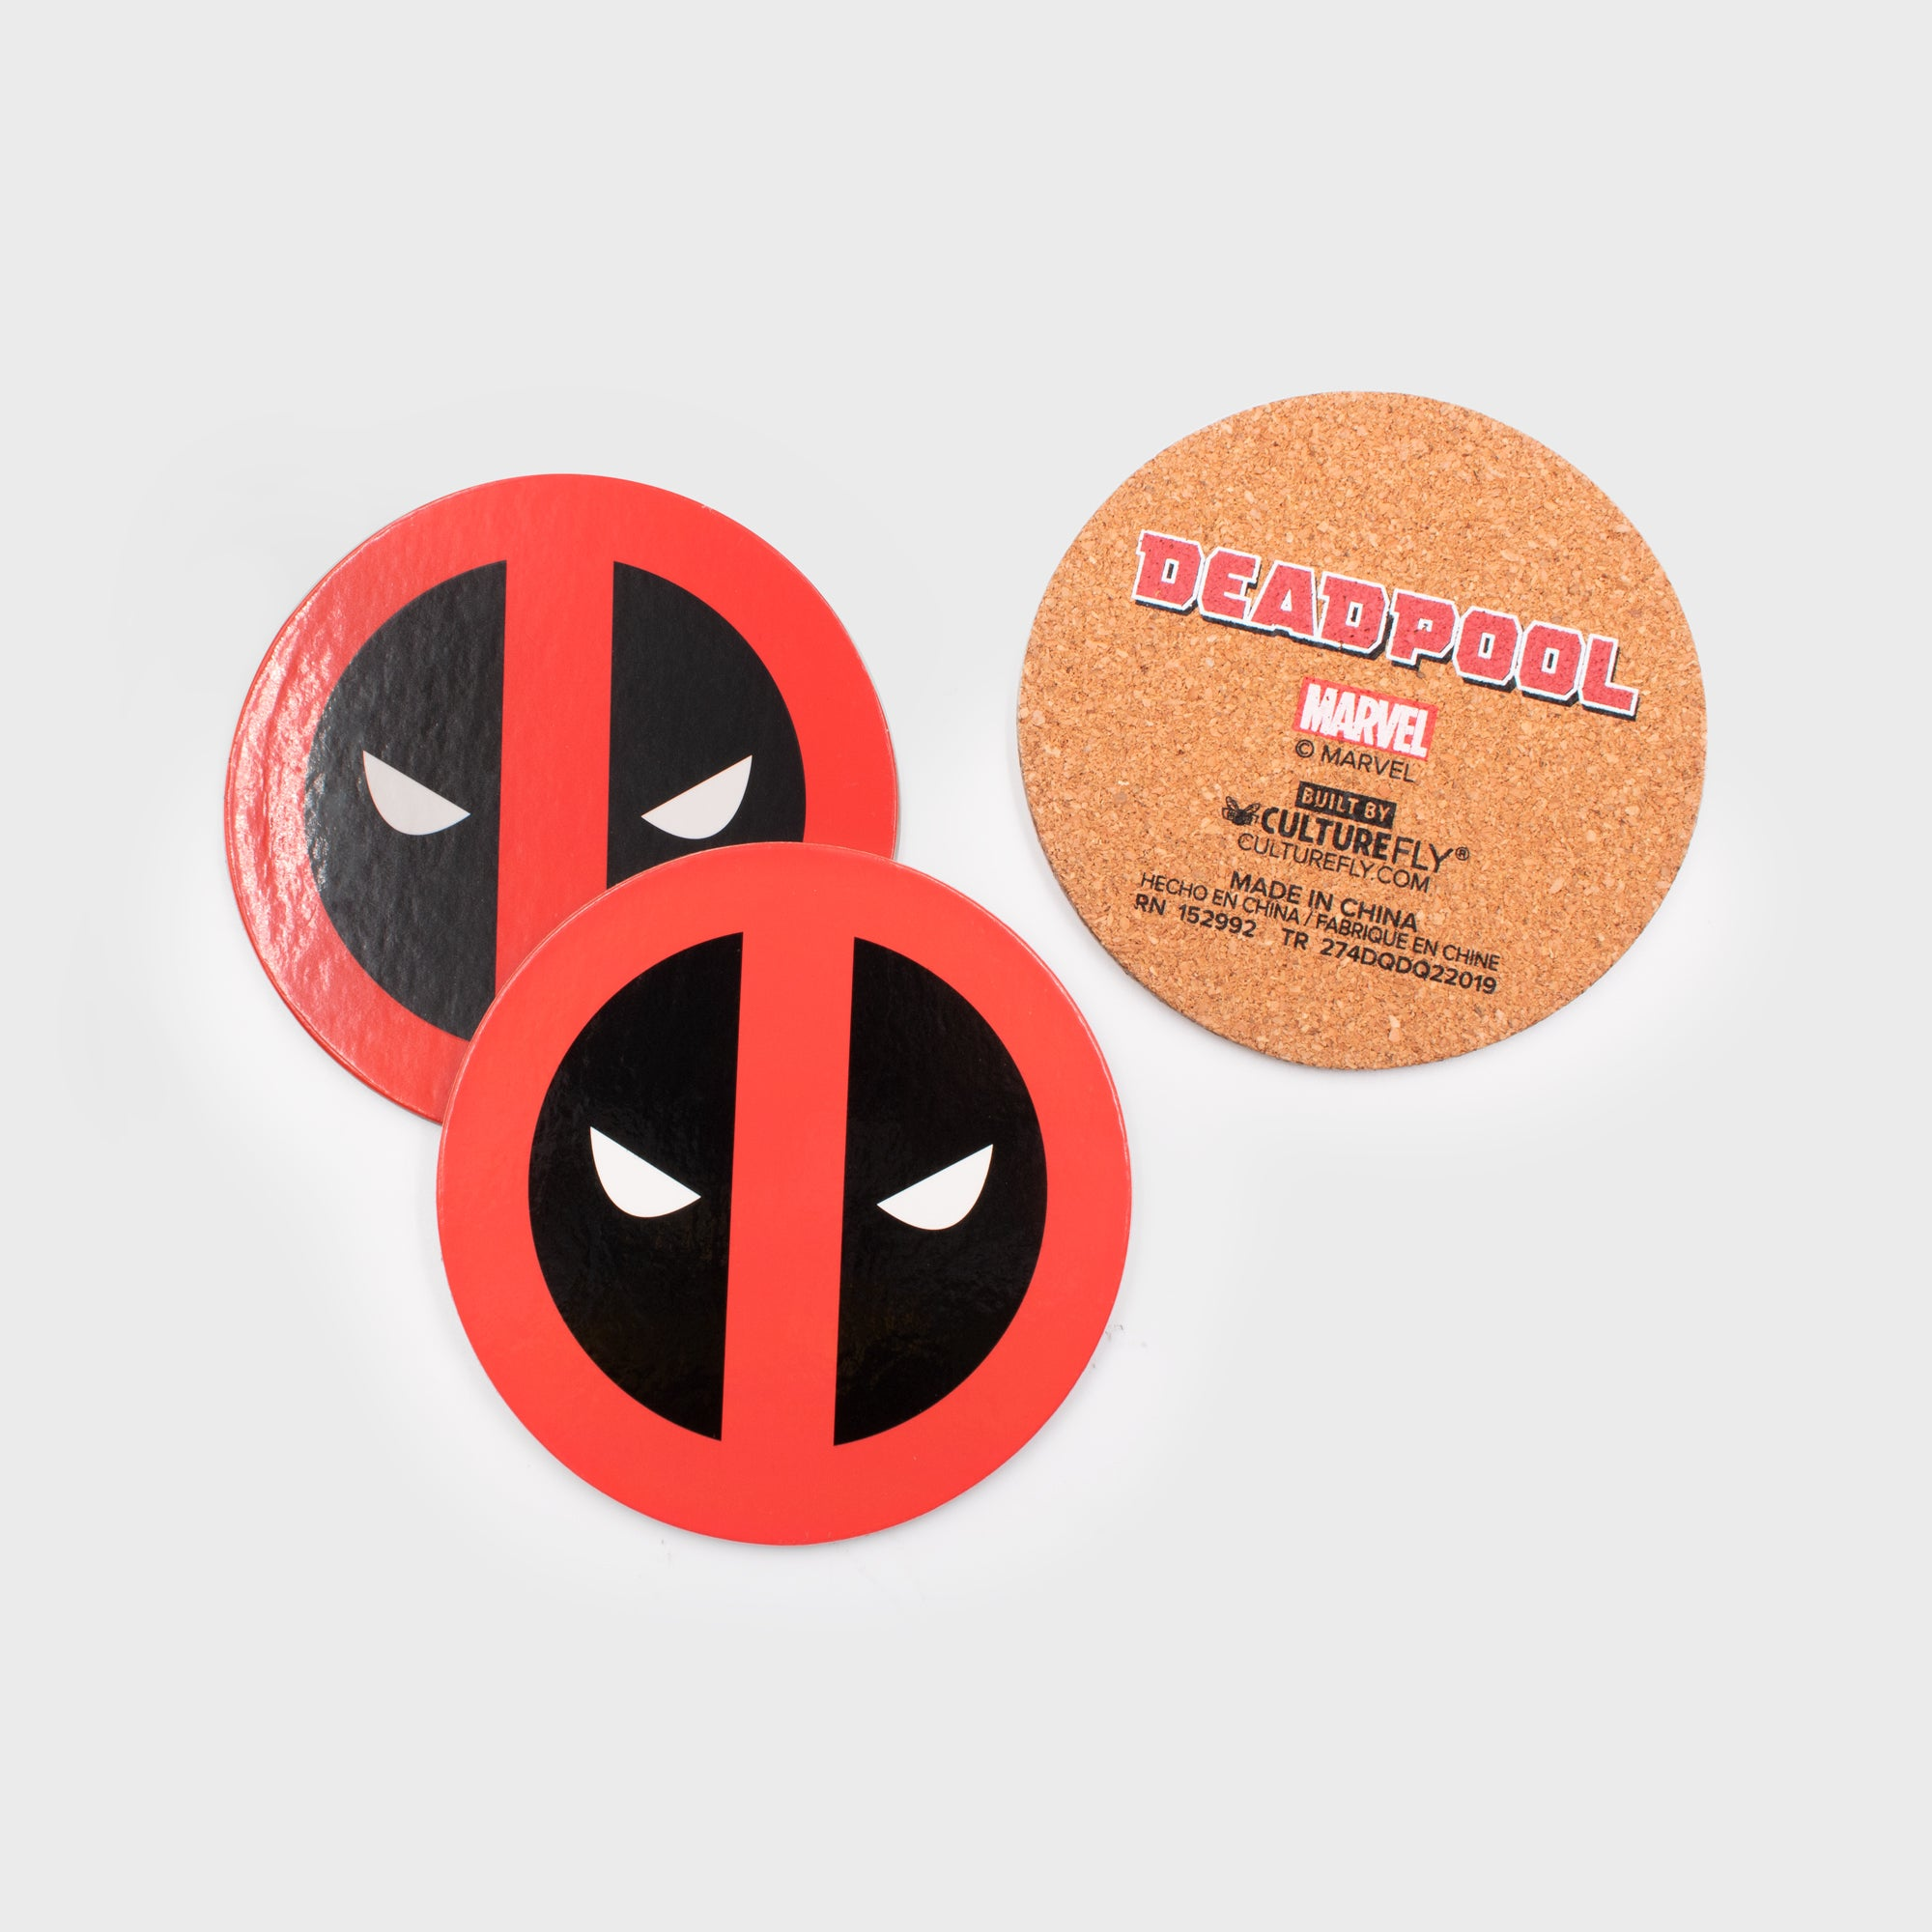 deadpool marvel superhero exclusive collector box home decor collectible kitchenware coasters coaster set enamel pin culturefly